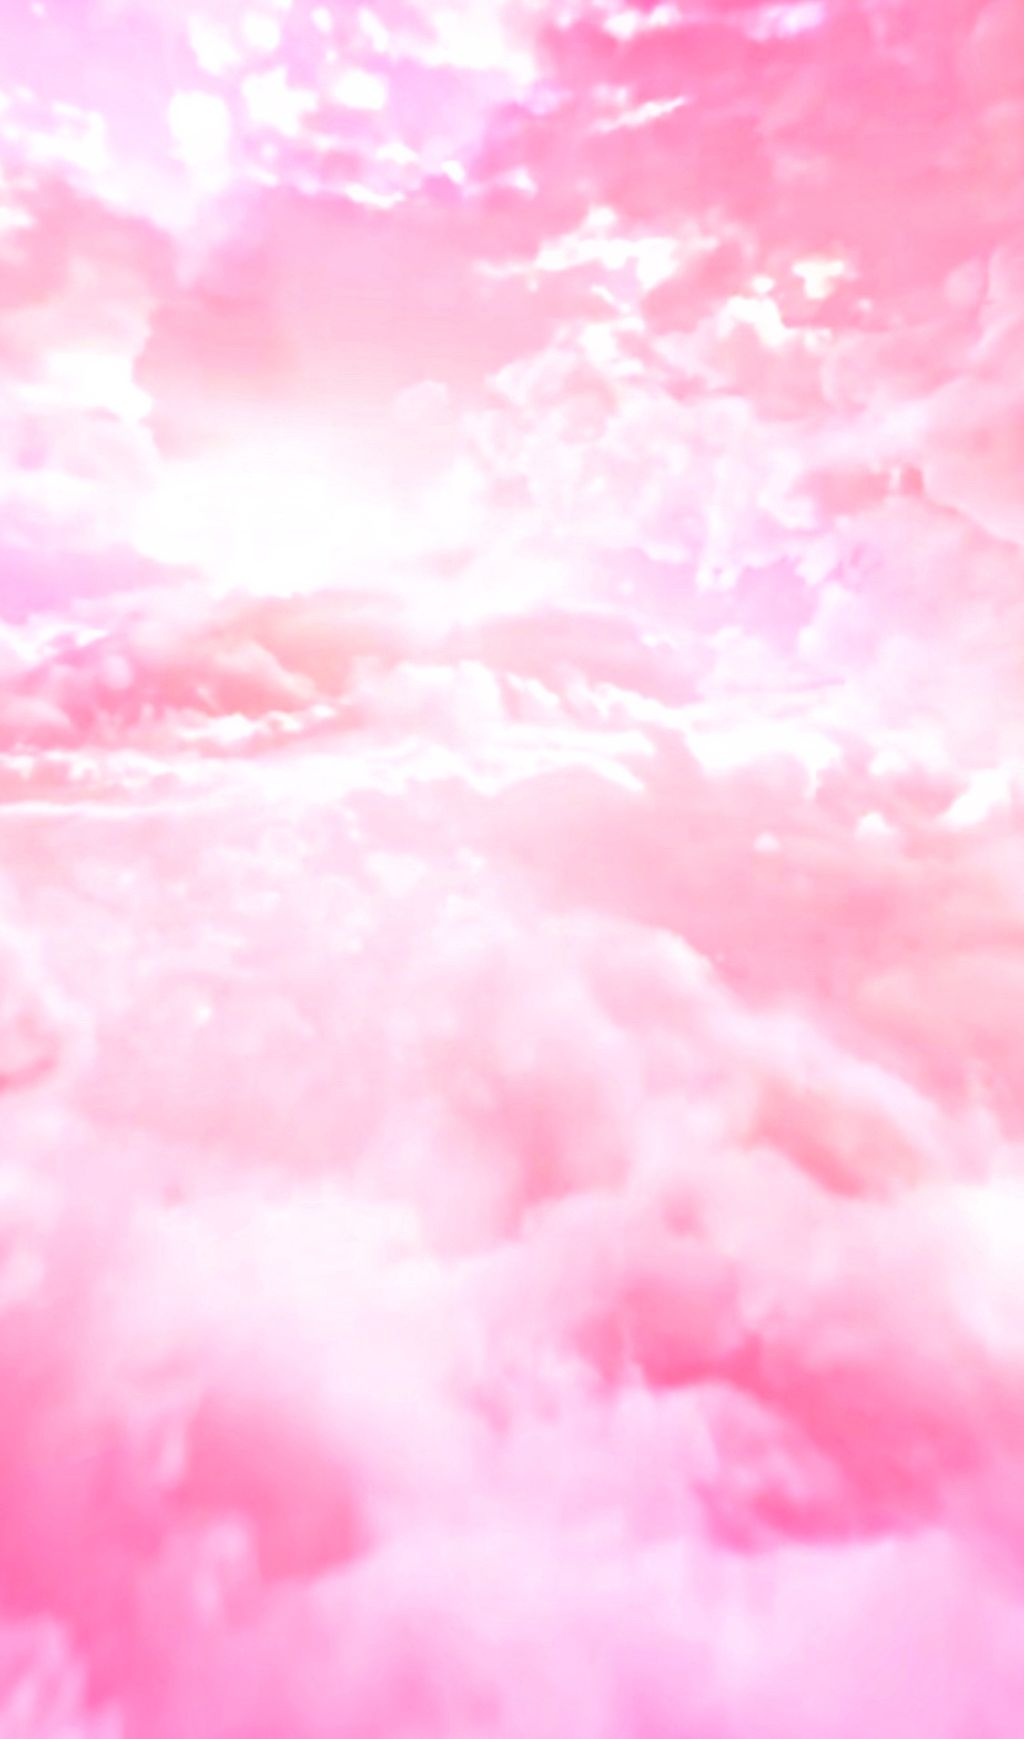 Cloud Image Pink Sky Free Background 1877342 Hd